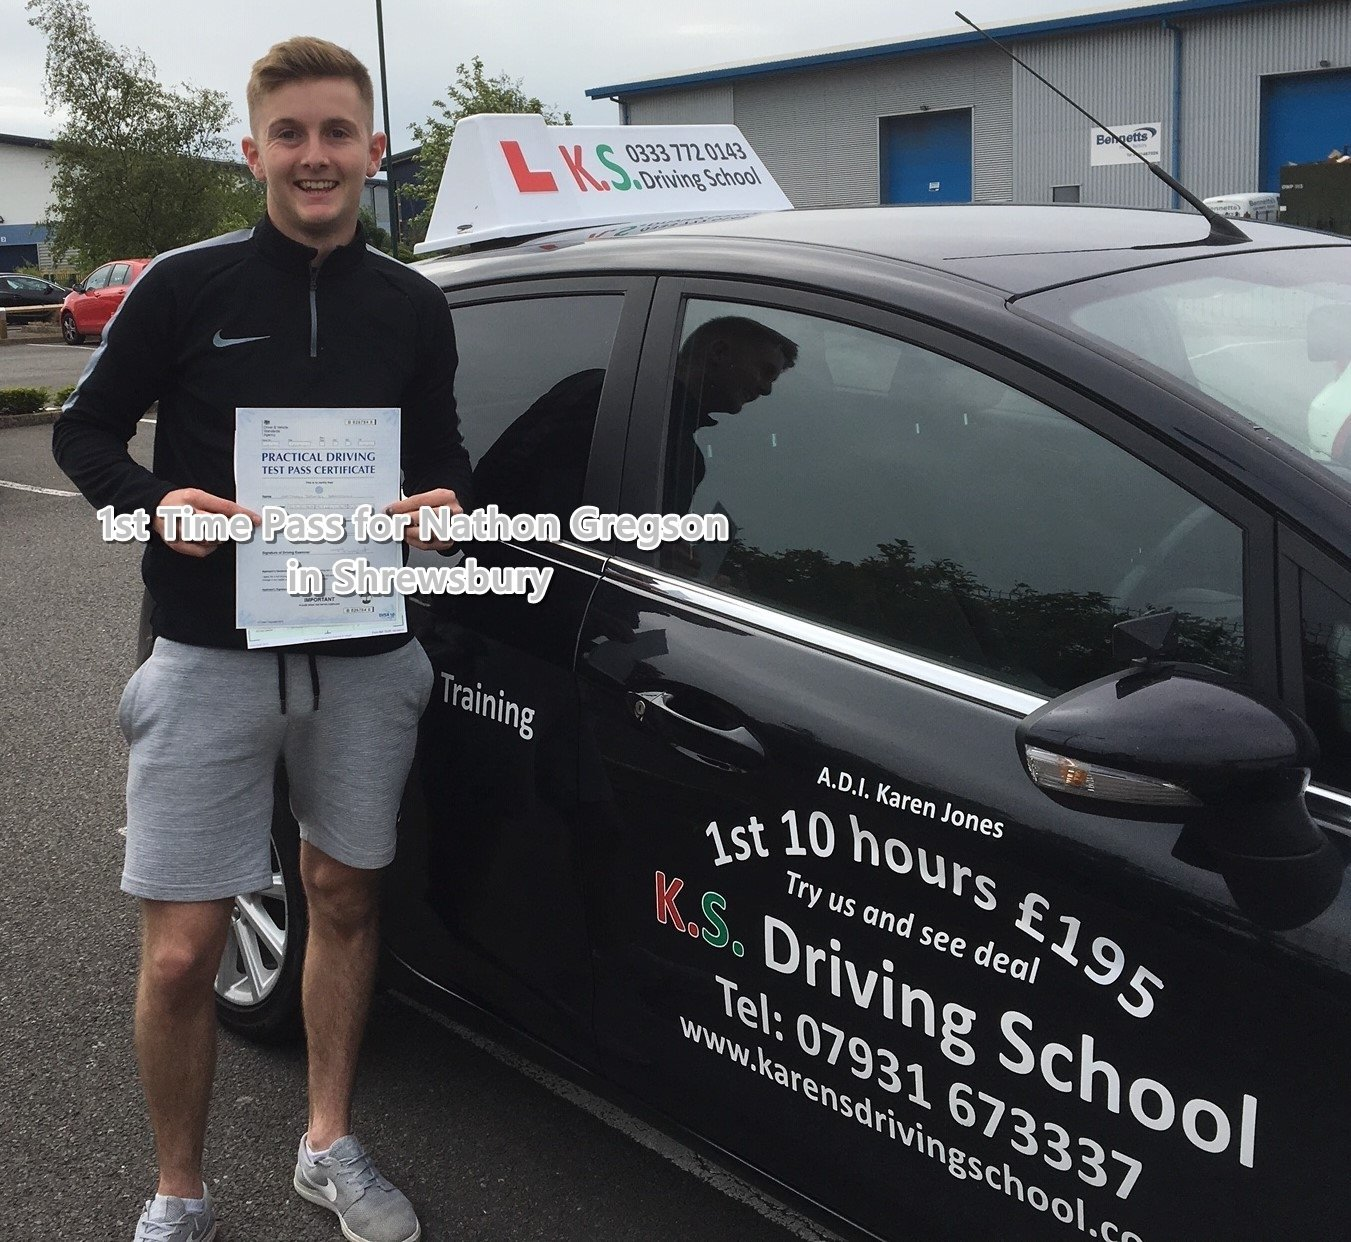 st Time Pass for Nathon Gregson in Shrewsbury 29th May